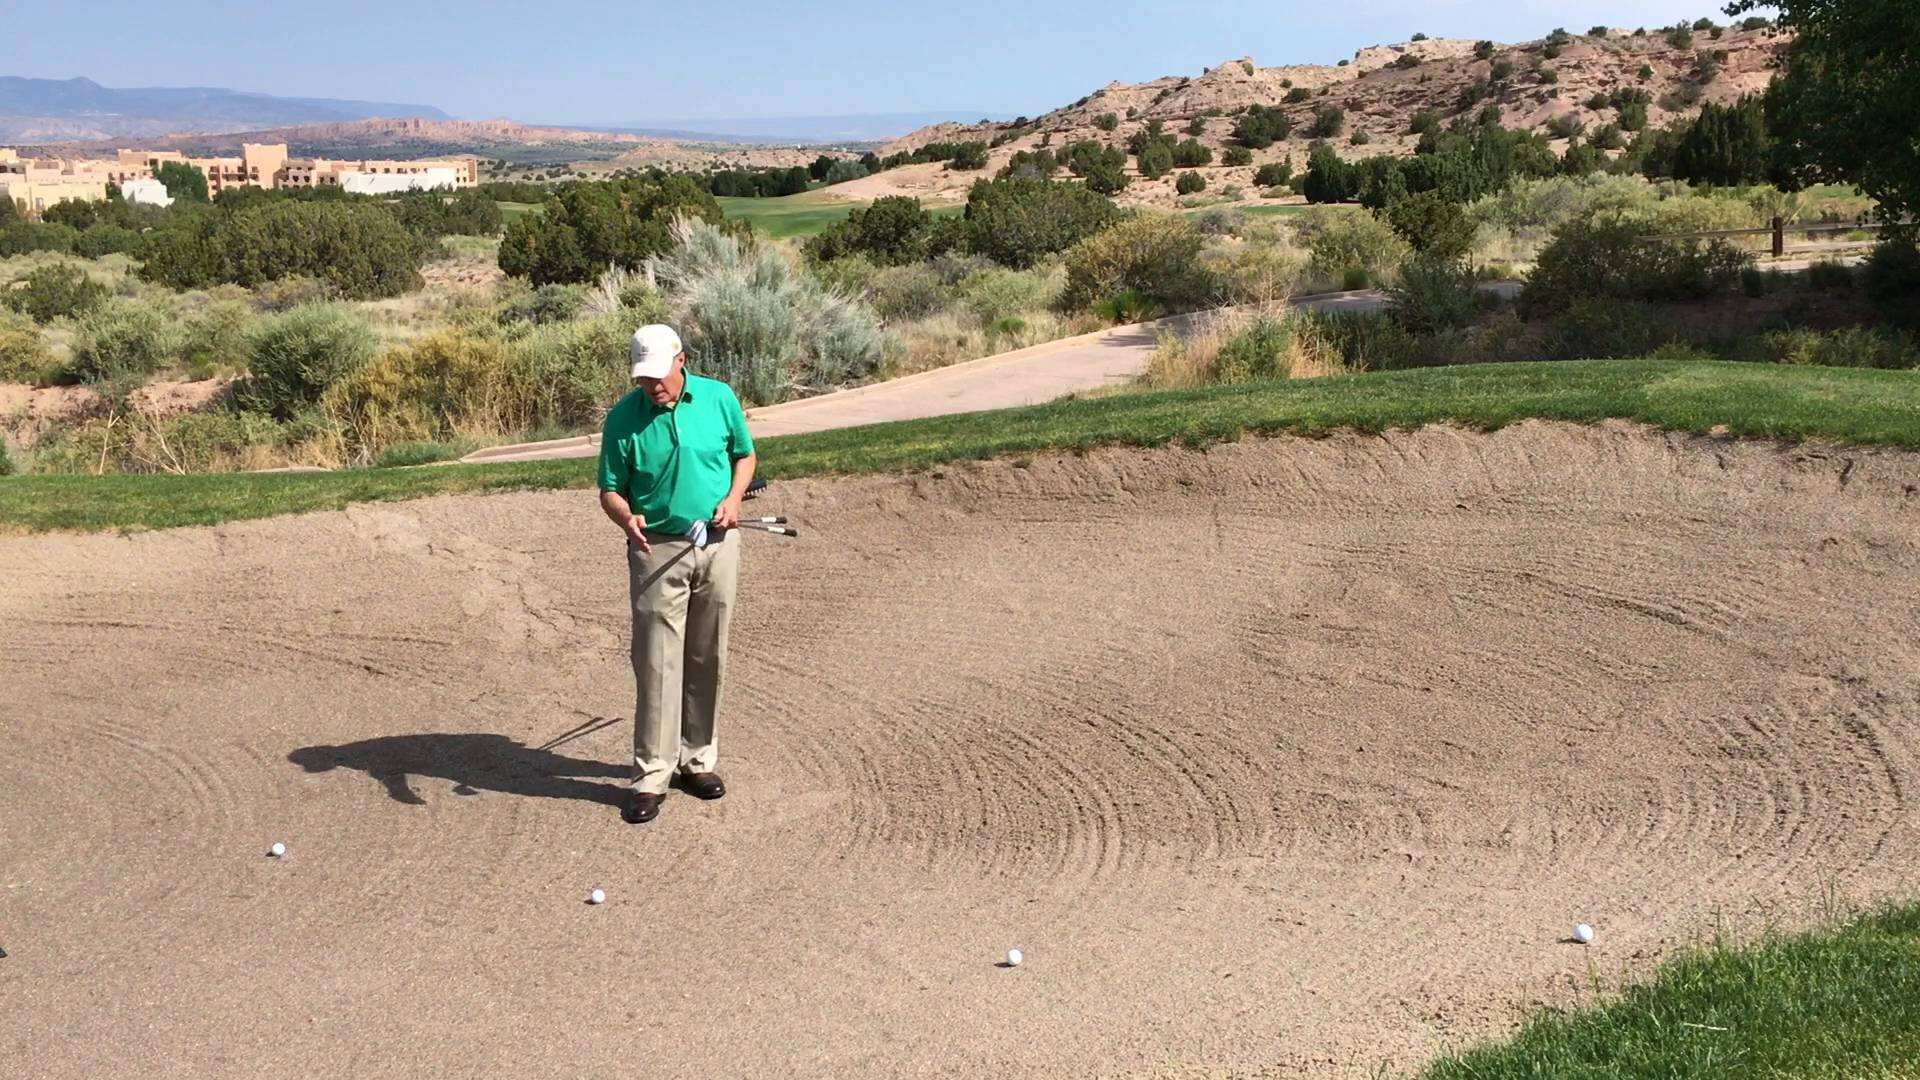 Club & Shot Selection in Sand With Good Lie and With Slope